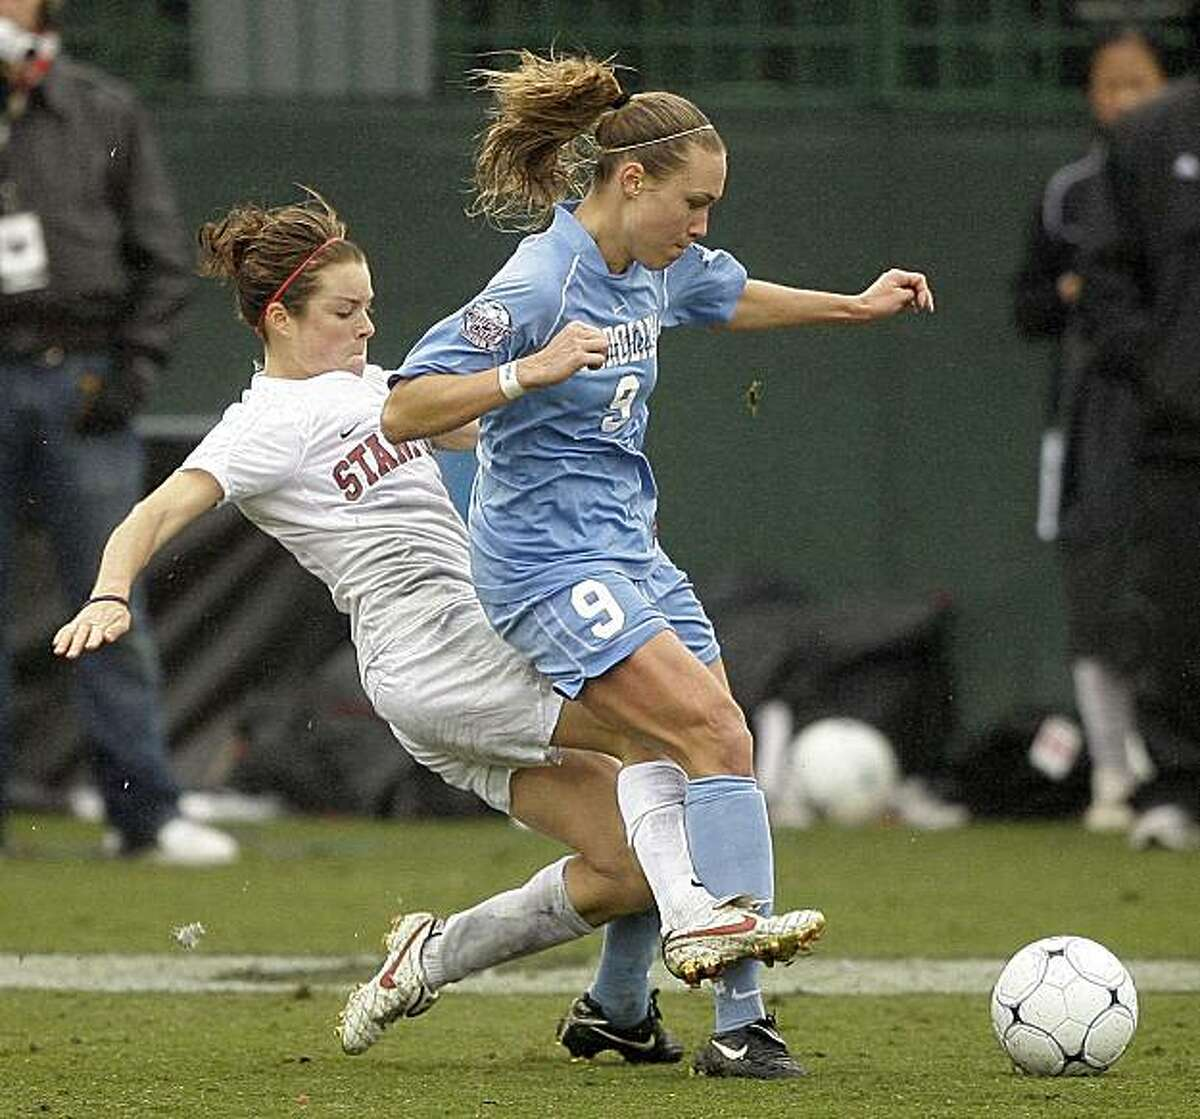 University of North Carolina women's soccer (1982-2012) UNC women's soccer has won 21 NCAA tournaments over the past 31 years, including nine in a row between 1986-1994.